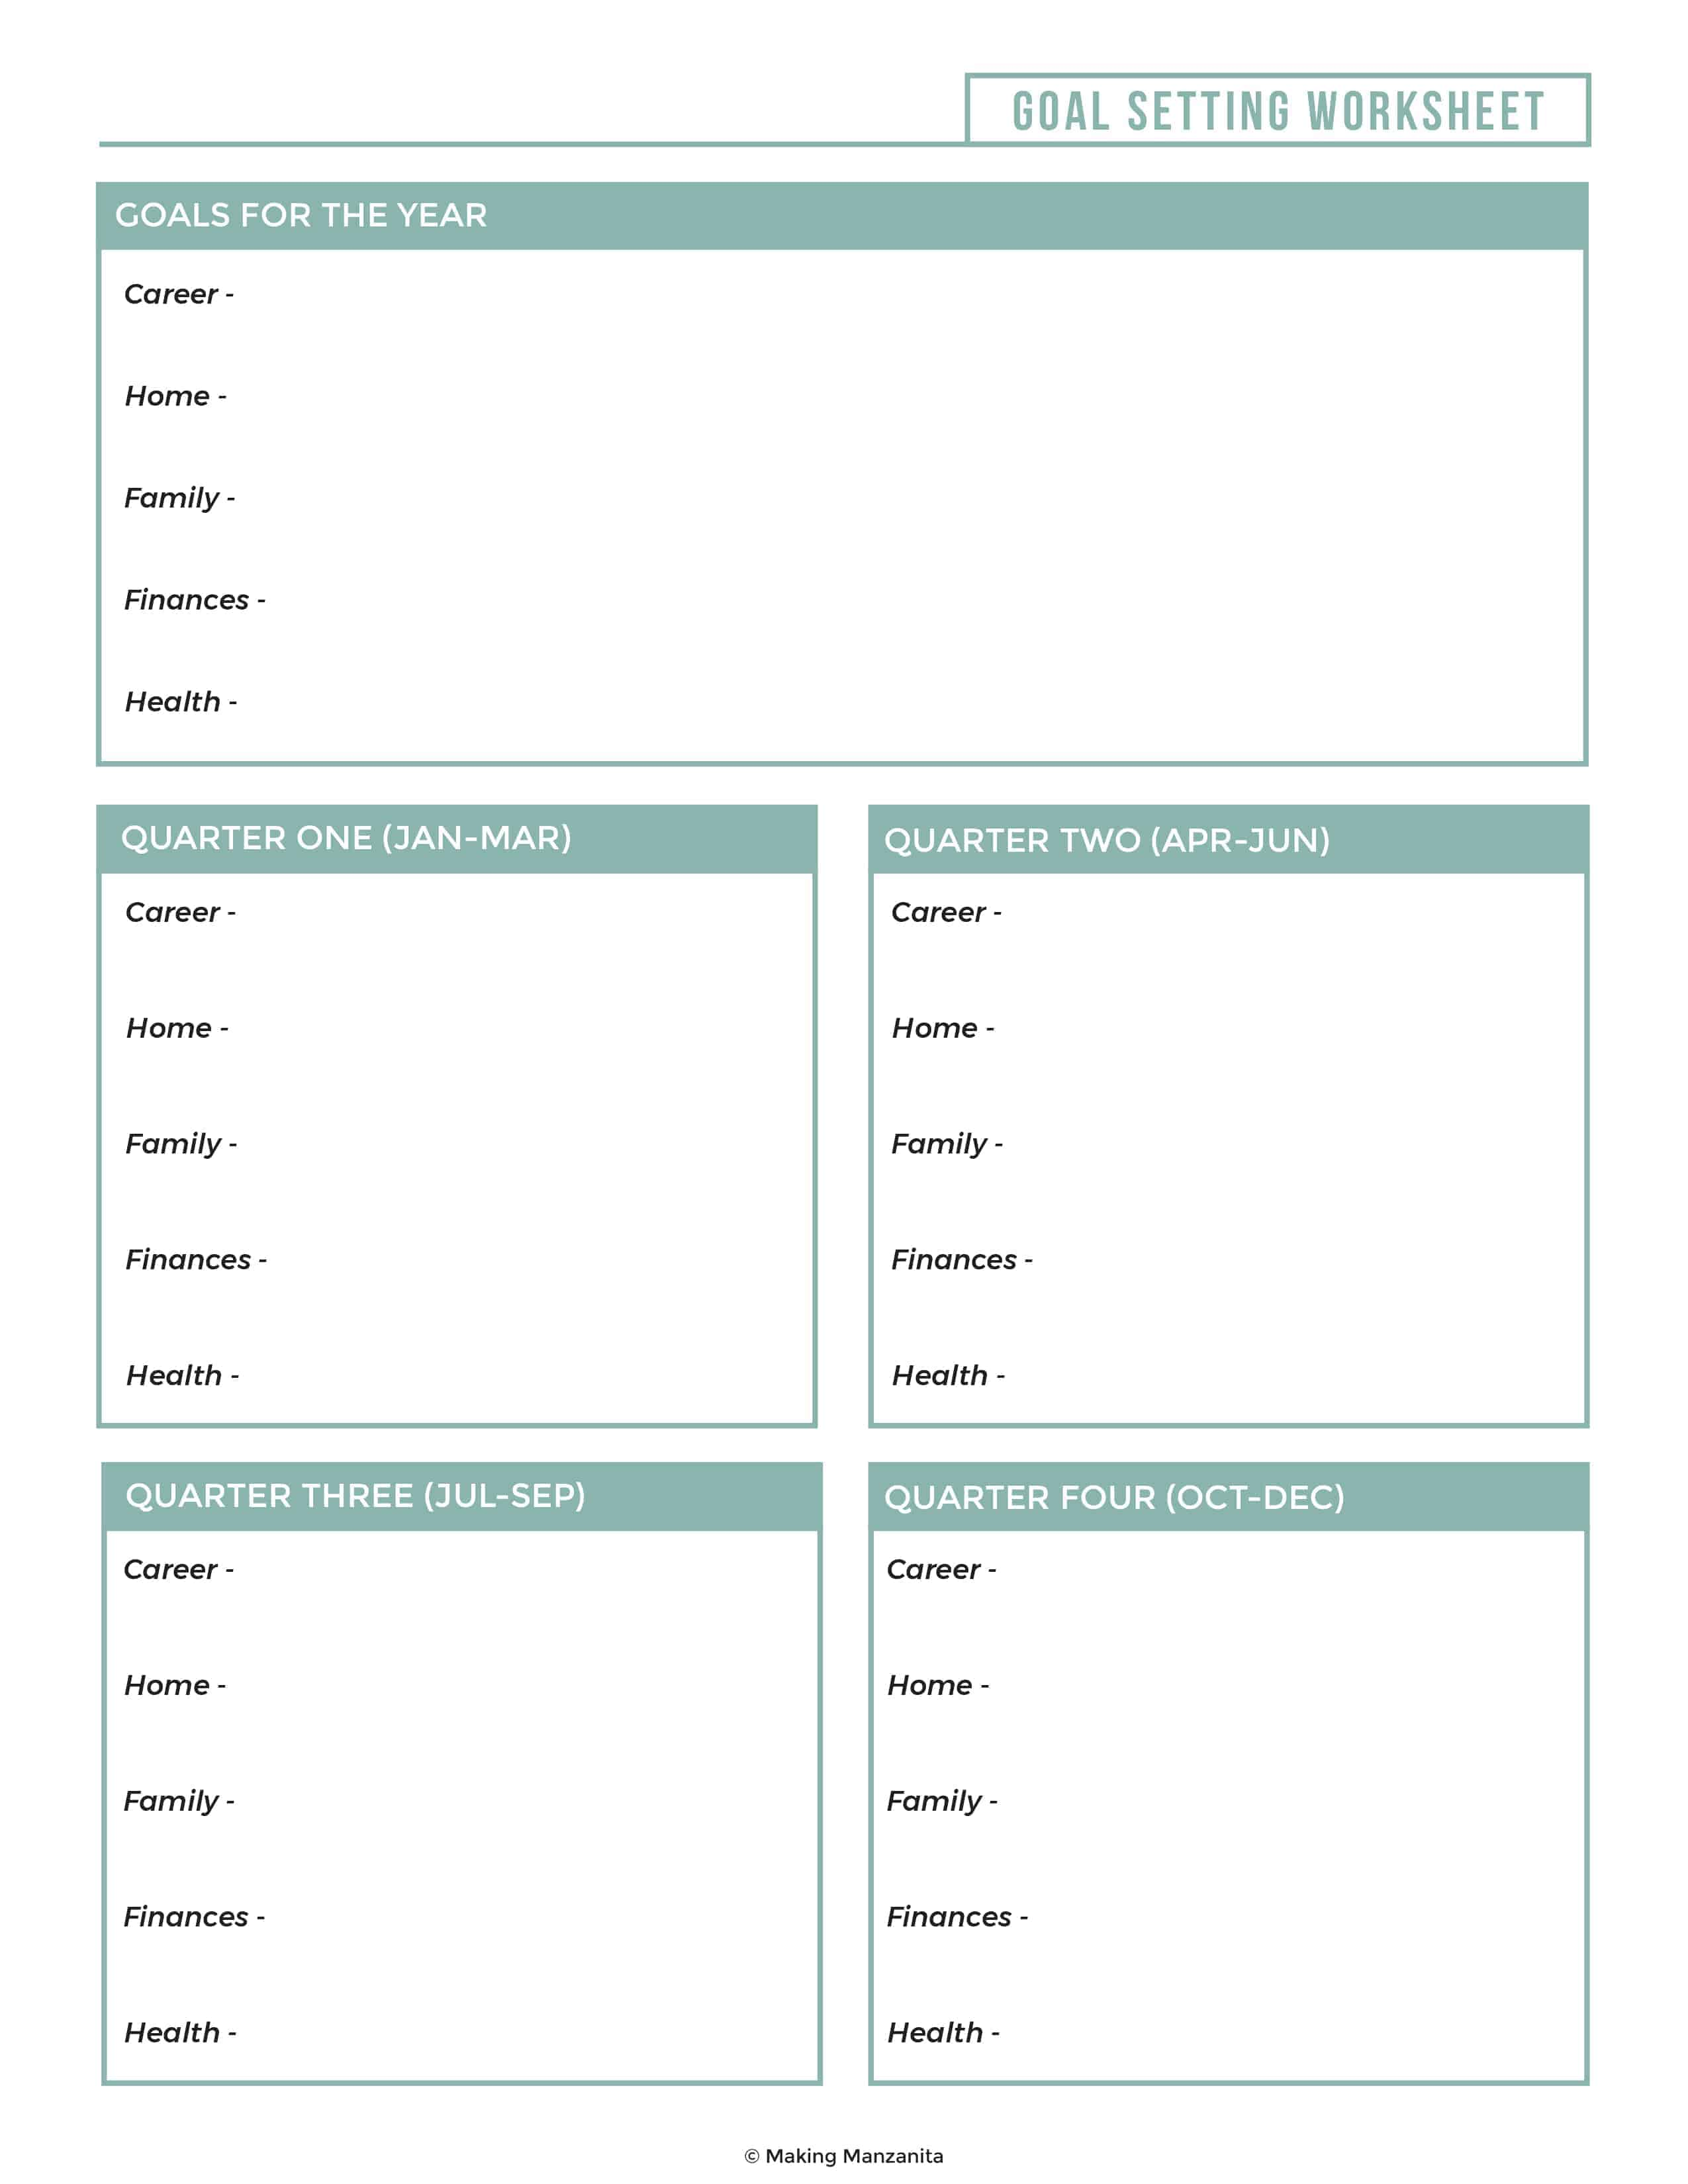 Grab This Goal Setting Worksheet To Crush Your Goals This